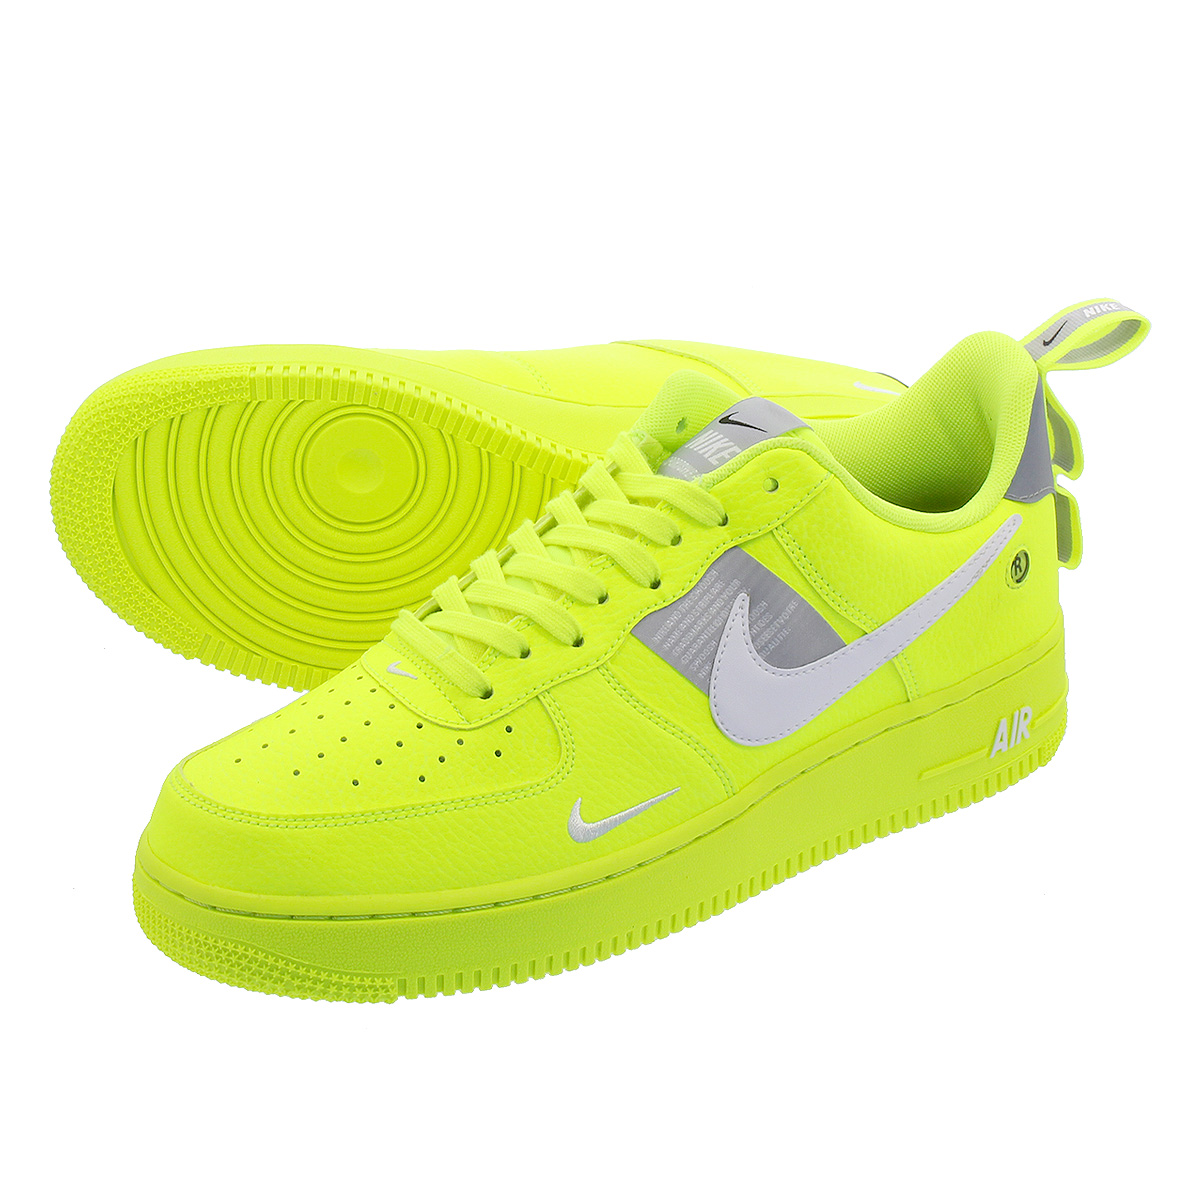 detailed look 9d6eb 2d9e0 NIKE AIR FORCE 1  07 LV8 UTILITY Nike air force 1  07 LV8 utility VOLT WHITE  BLACK WOLF GREY aj7747-700